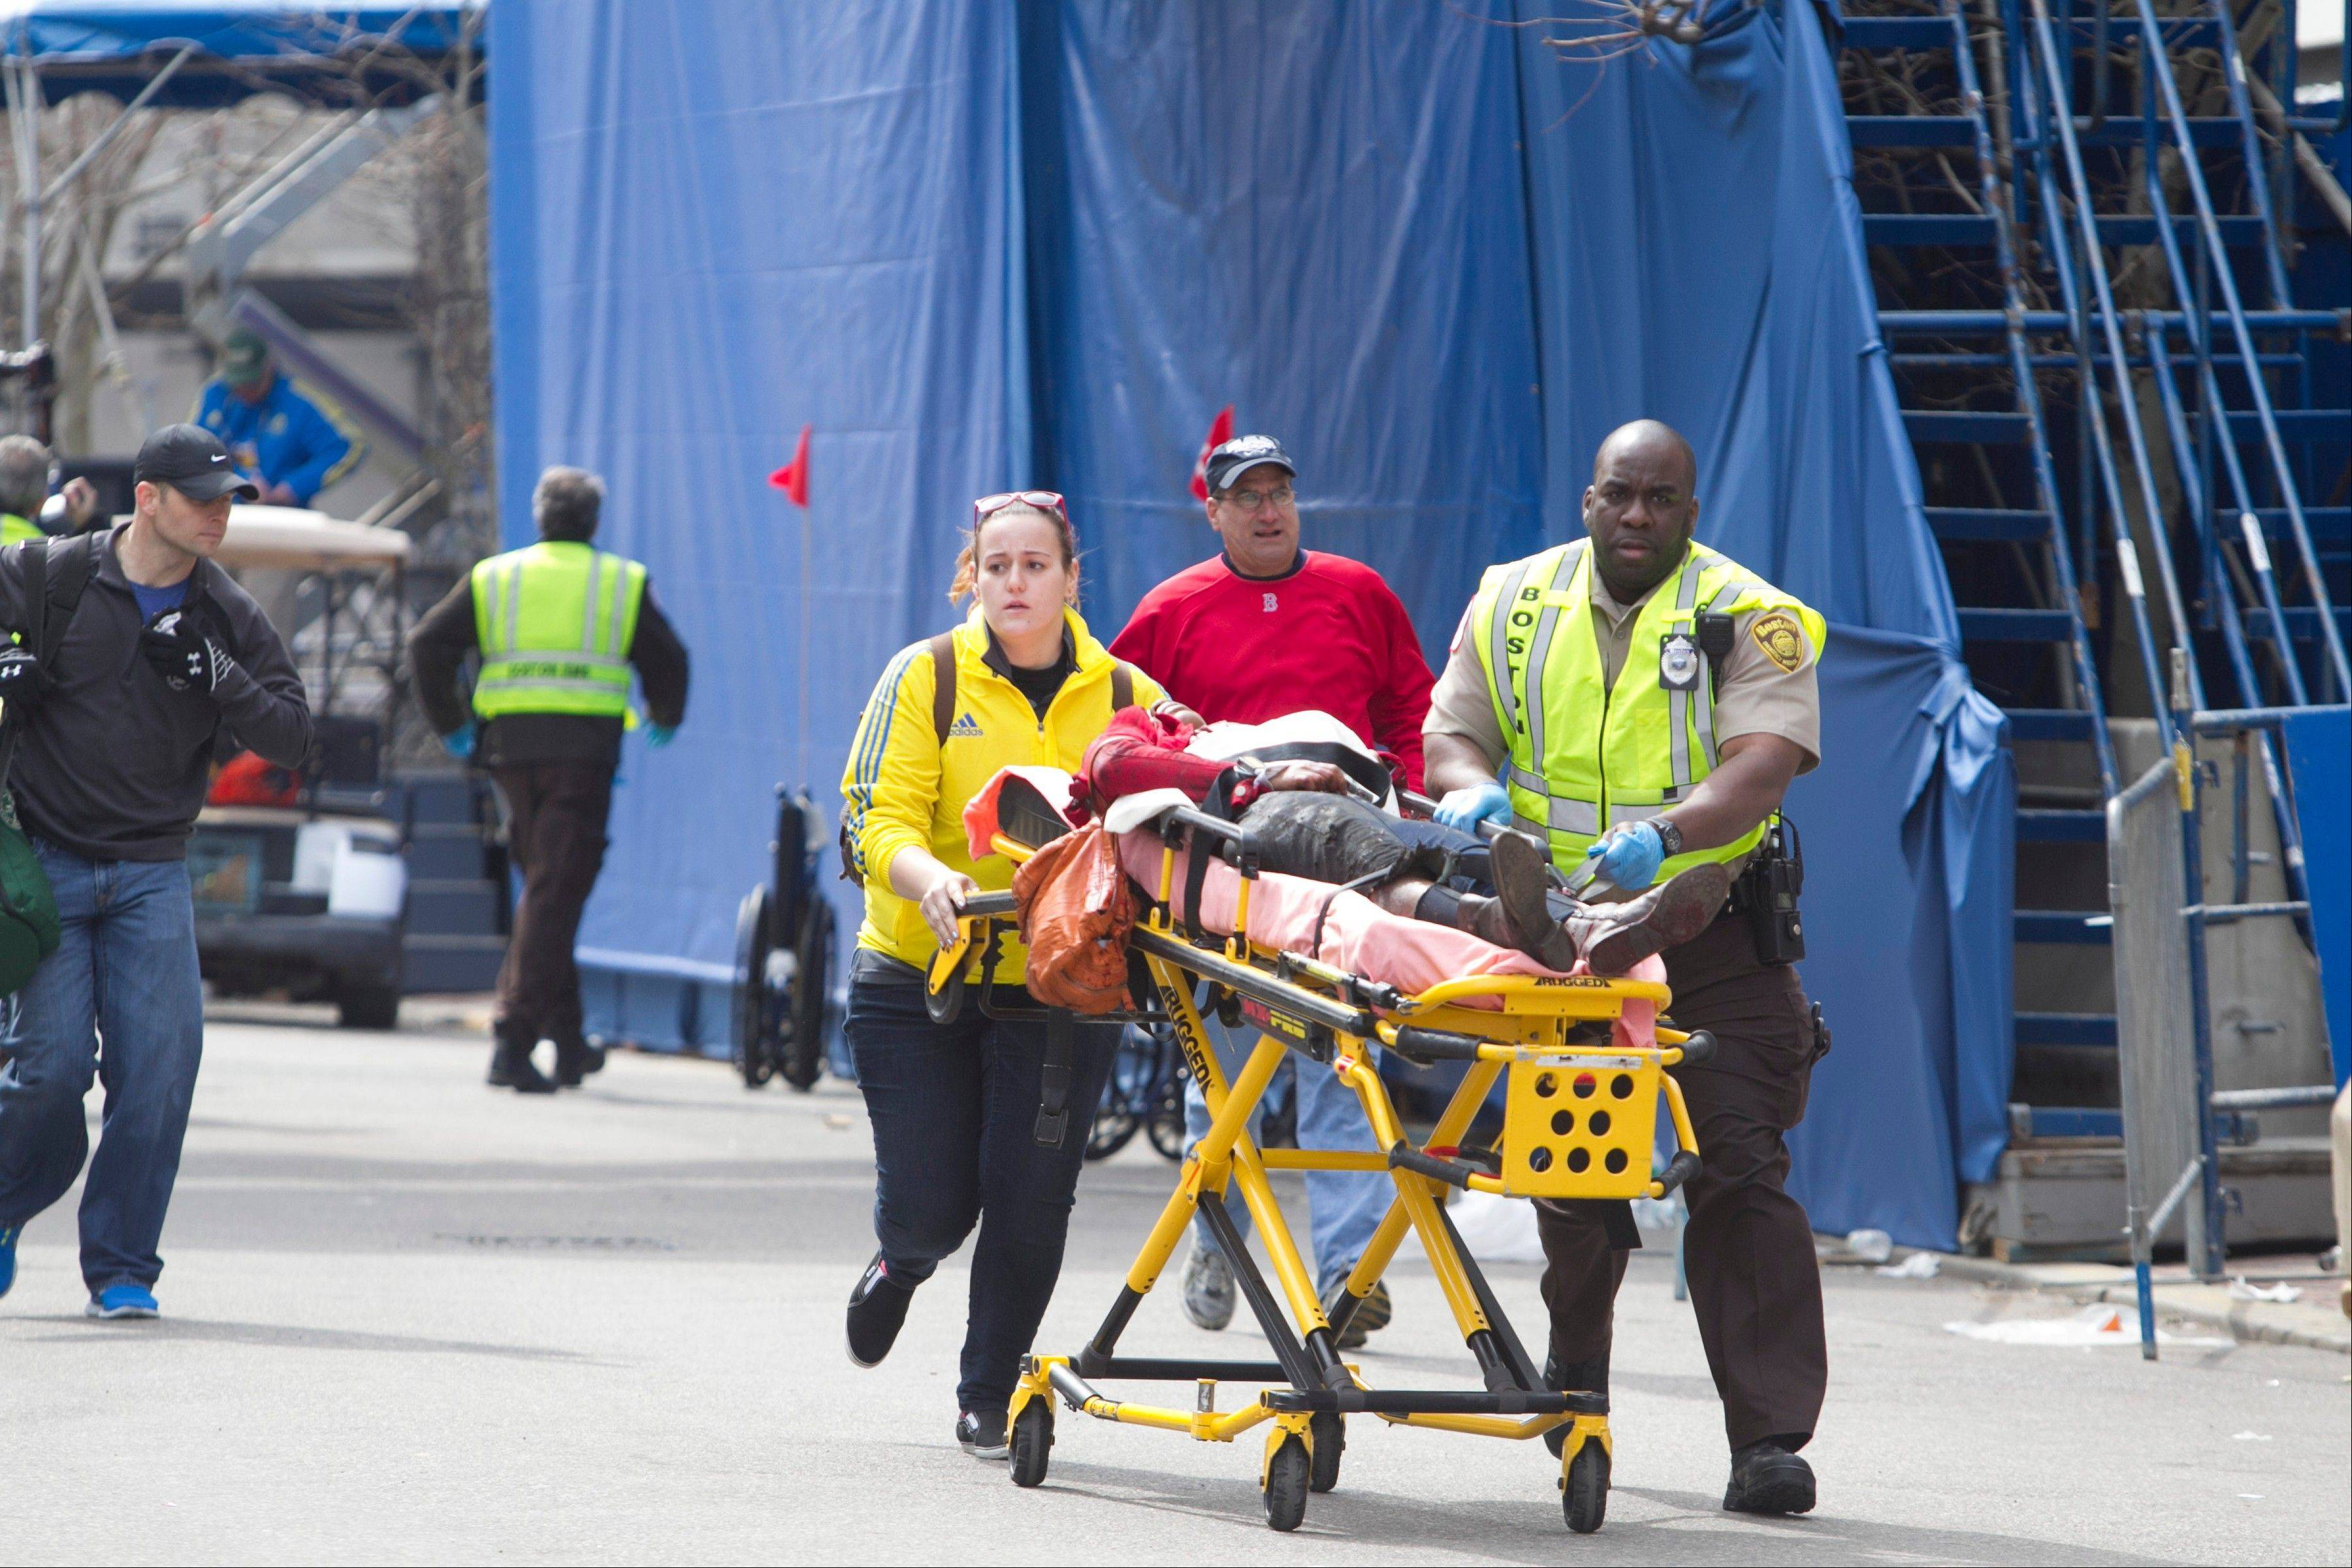 First responders transport the wounded where two explosions occurred along the final stretch of the Boston Marathon on Boylston Street in Boston, Massachusetts, U.S., on Monday, April 15, 2013. Two powerful explosions rocked the finish line area of the Boston Marathon near Copley Square and police said many people were injured.